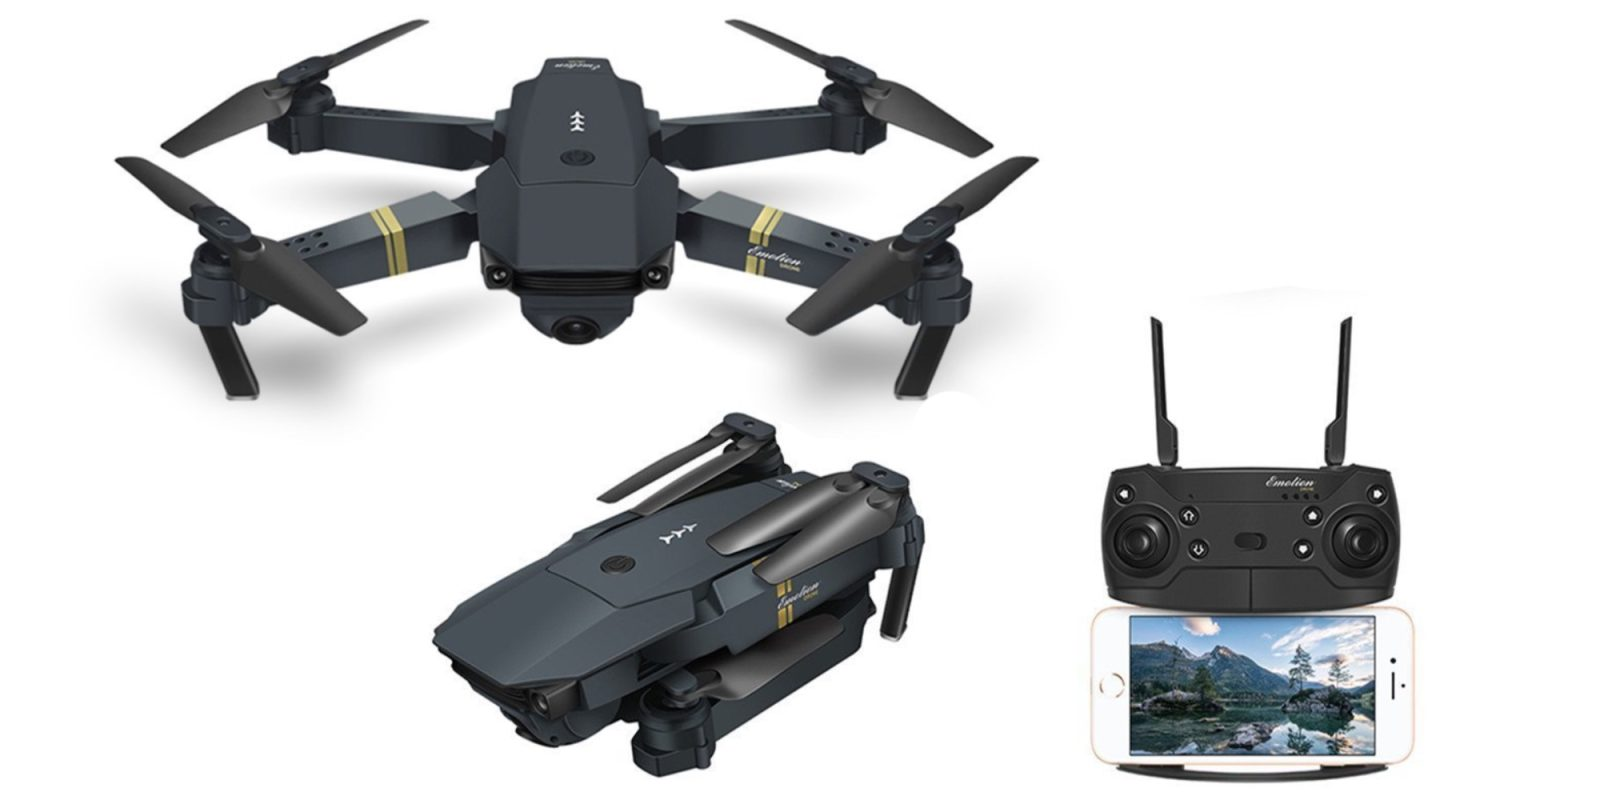 Eachine's E58 FPV Quadcopter Drone gets a 35% discount to new low at $49.50